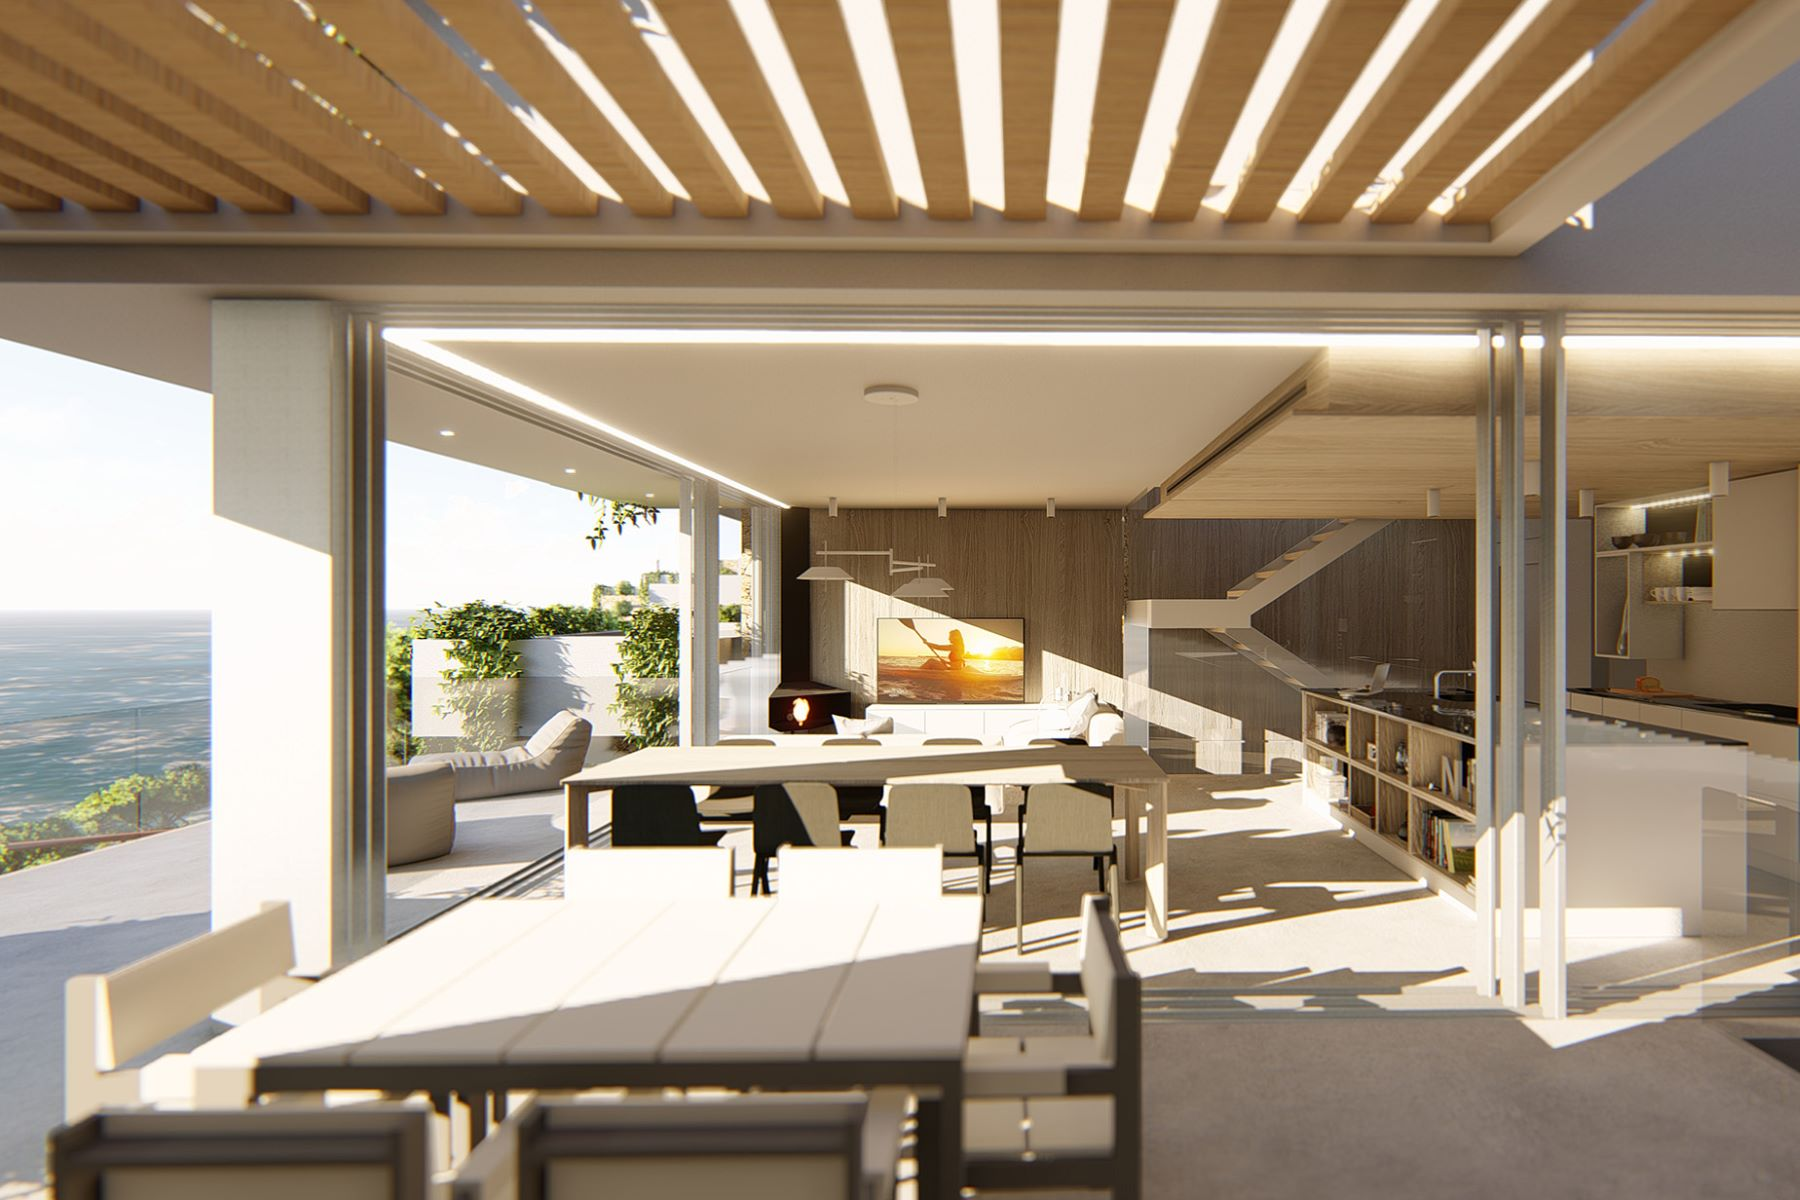 Single Family Home for Sale at House of new construction, design and facing the sea Tamariu, Costa Brava 17212 Spain